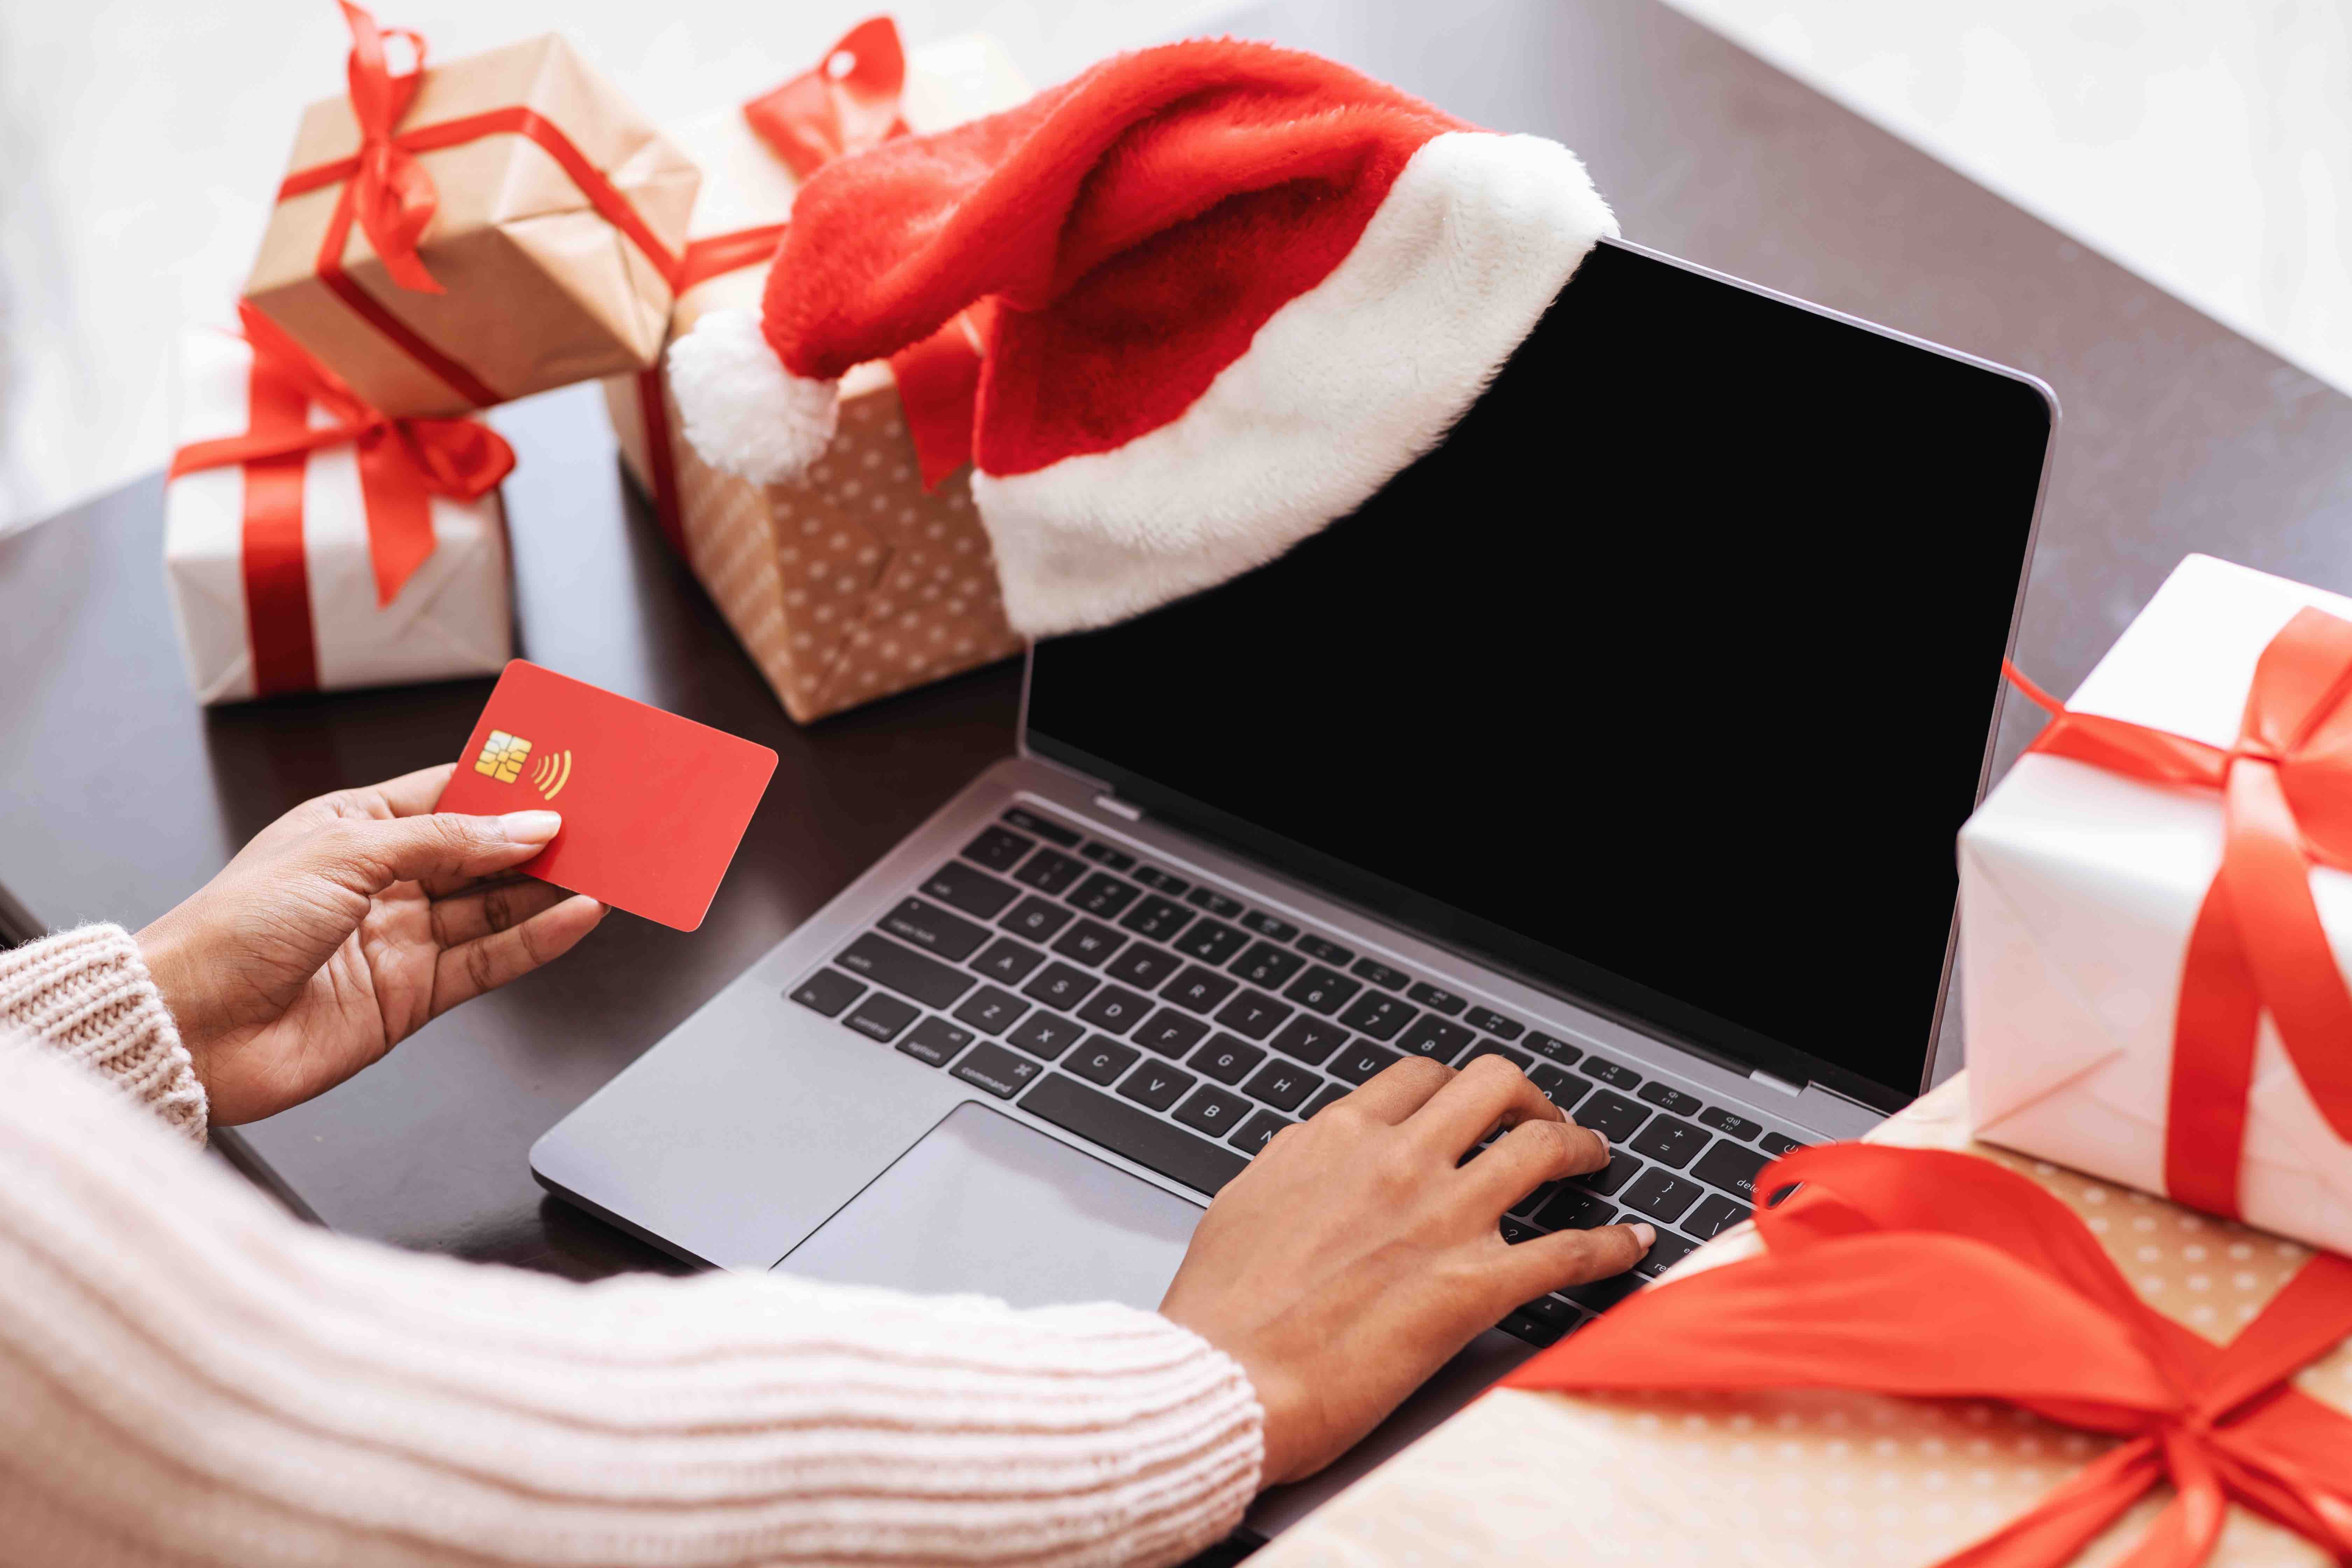 holidays 2020 website tips holiday strategies ecommerce online stores online store online business small business owner christmas 2020